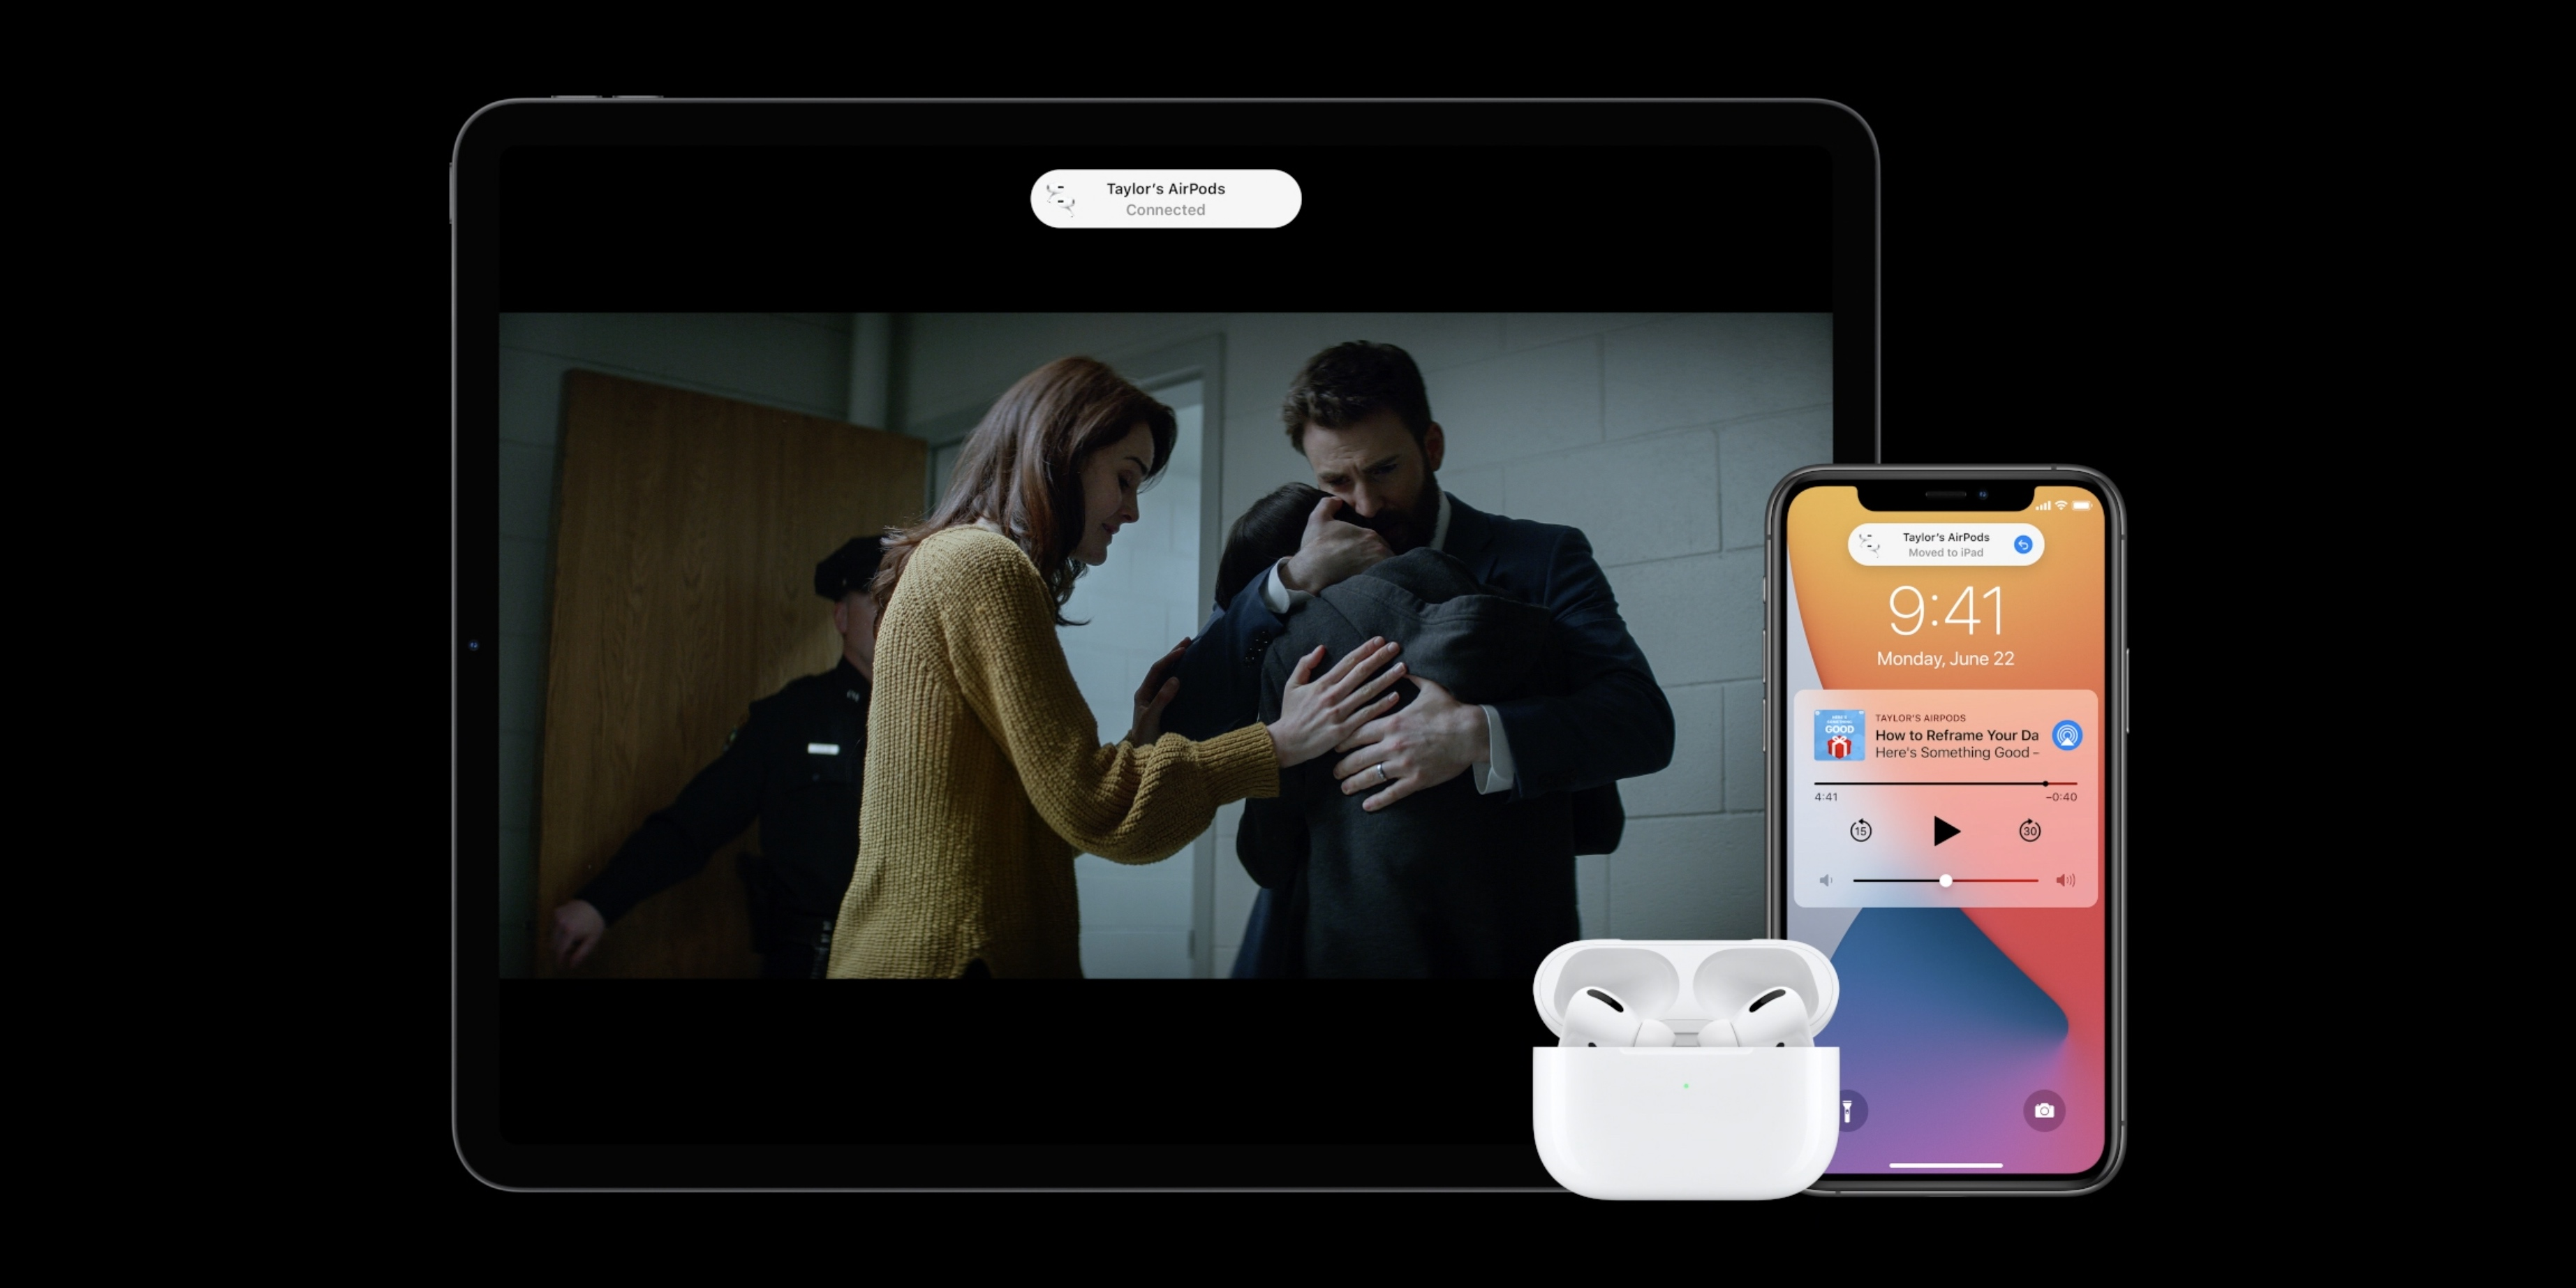 photo of iOS 14: How to stop your AirPods automatically switching from iPhone to iPad image